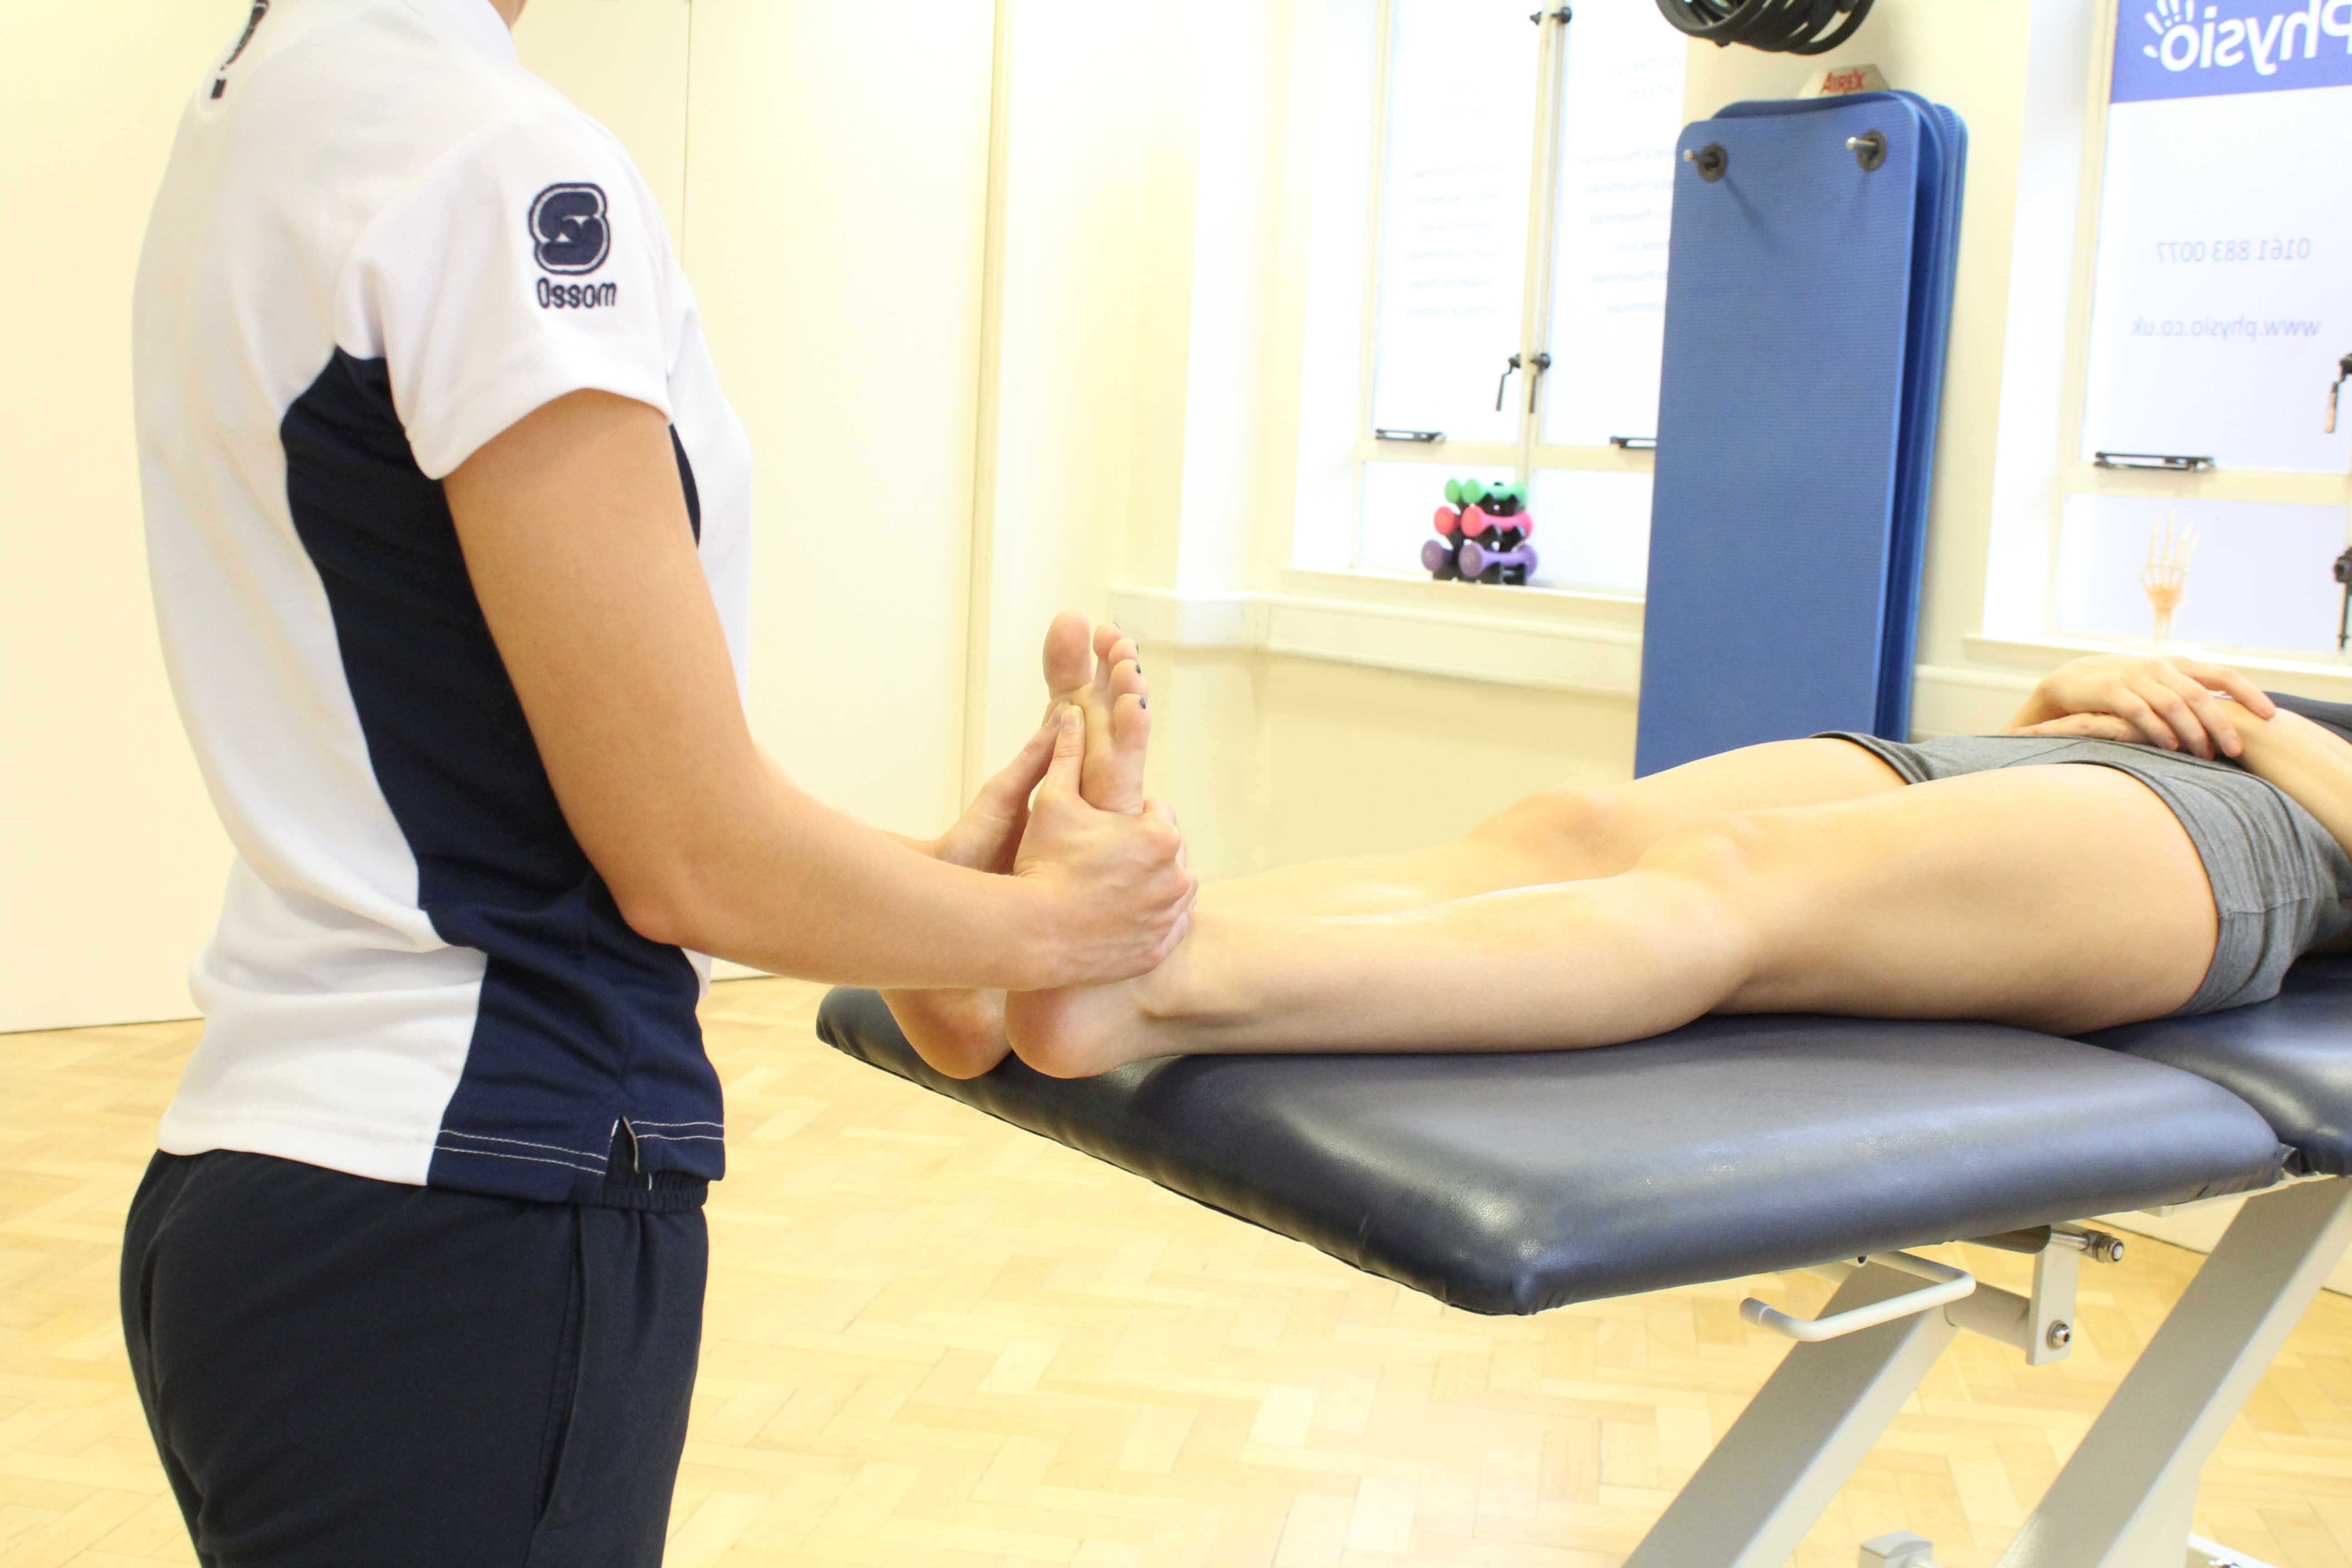 Accupressure massage of the planta fascia under the foot